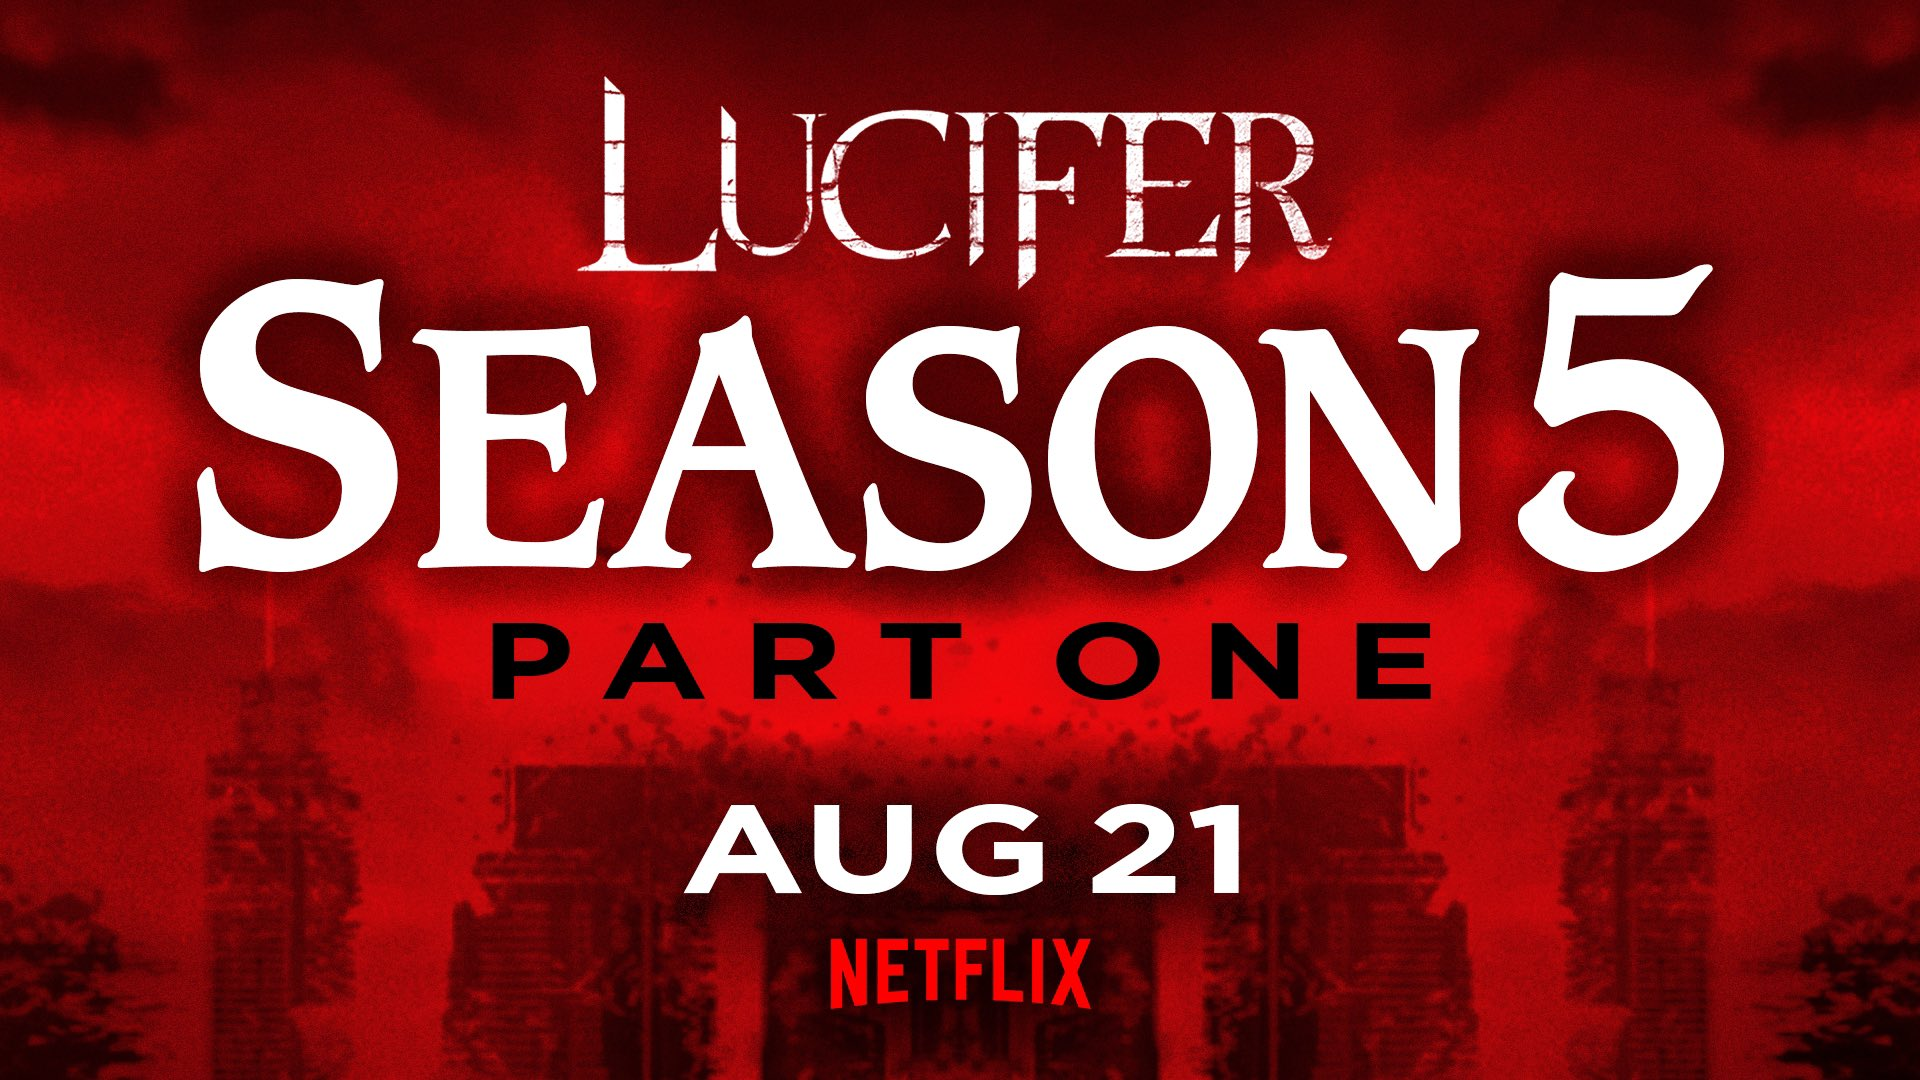 Chris Rafferty On Twitter The Release Date Is Official Lucifer Season 5 Part 1 Will Be Available On Netflix August 21st Yes We Know That S Not Soon Enough For You But That S